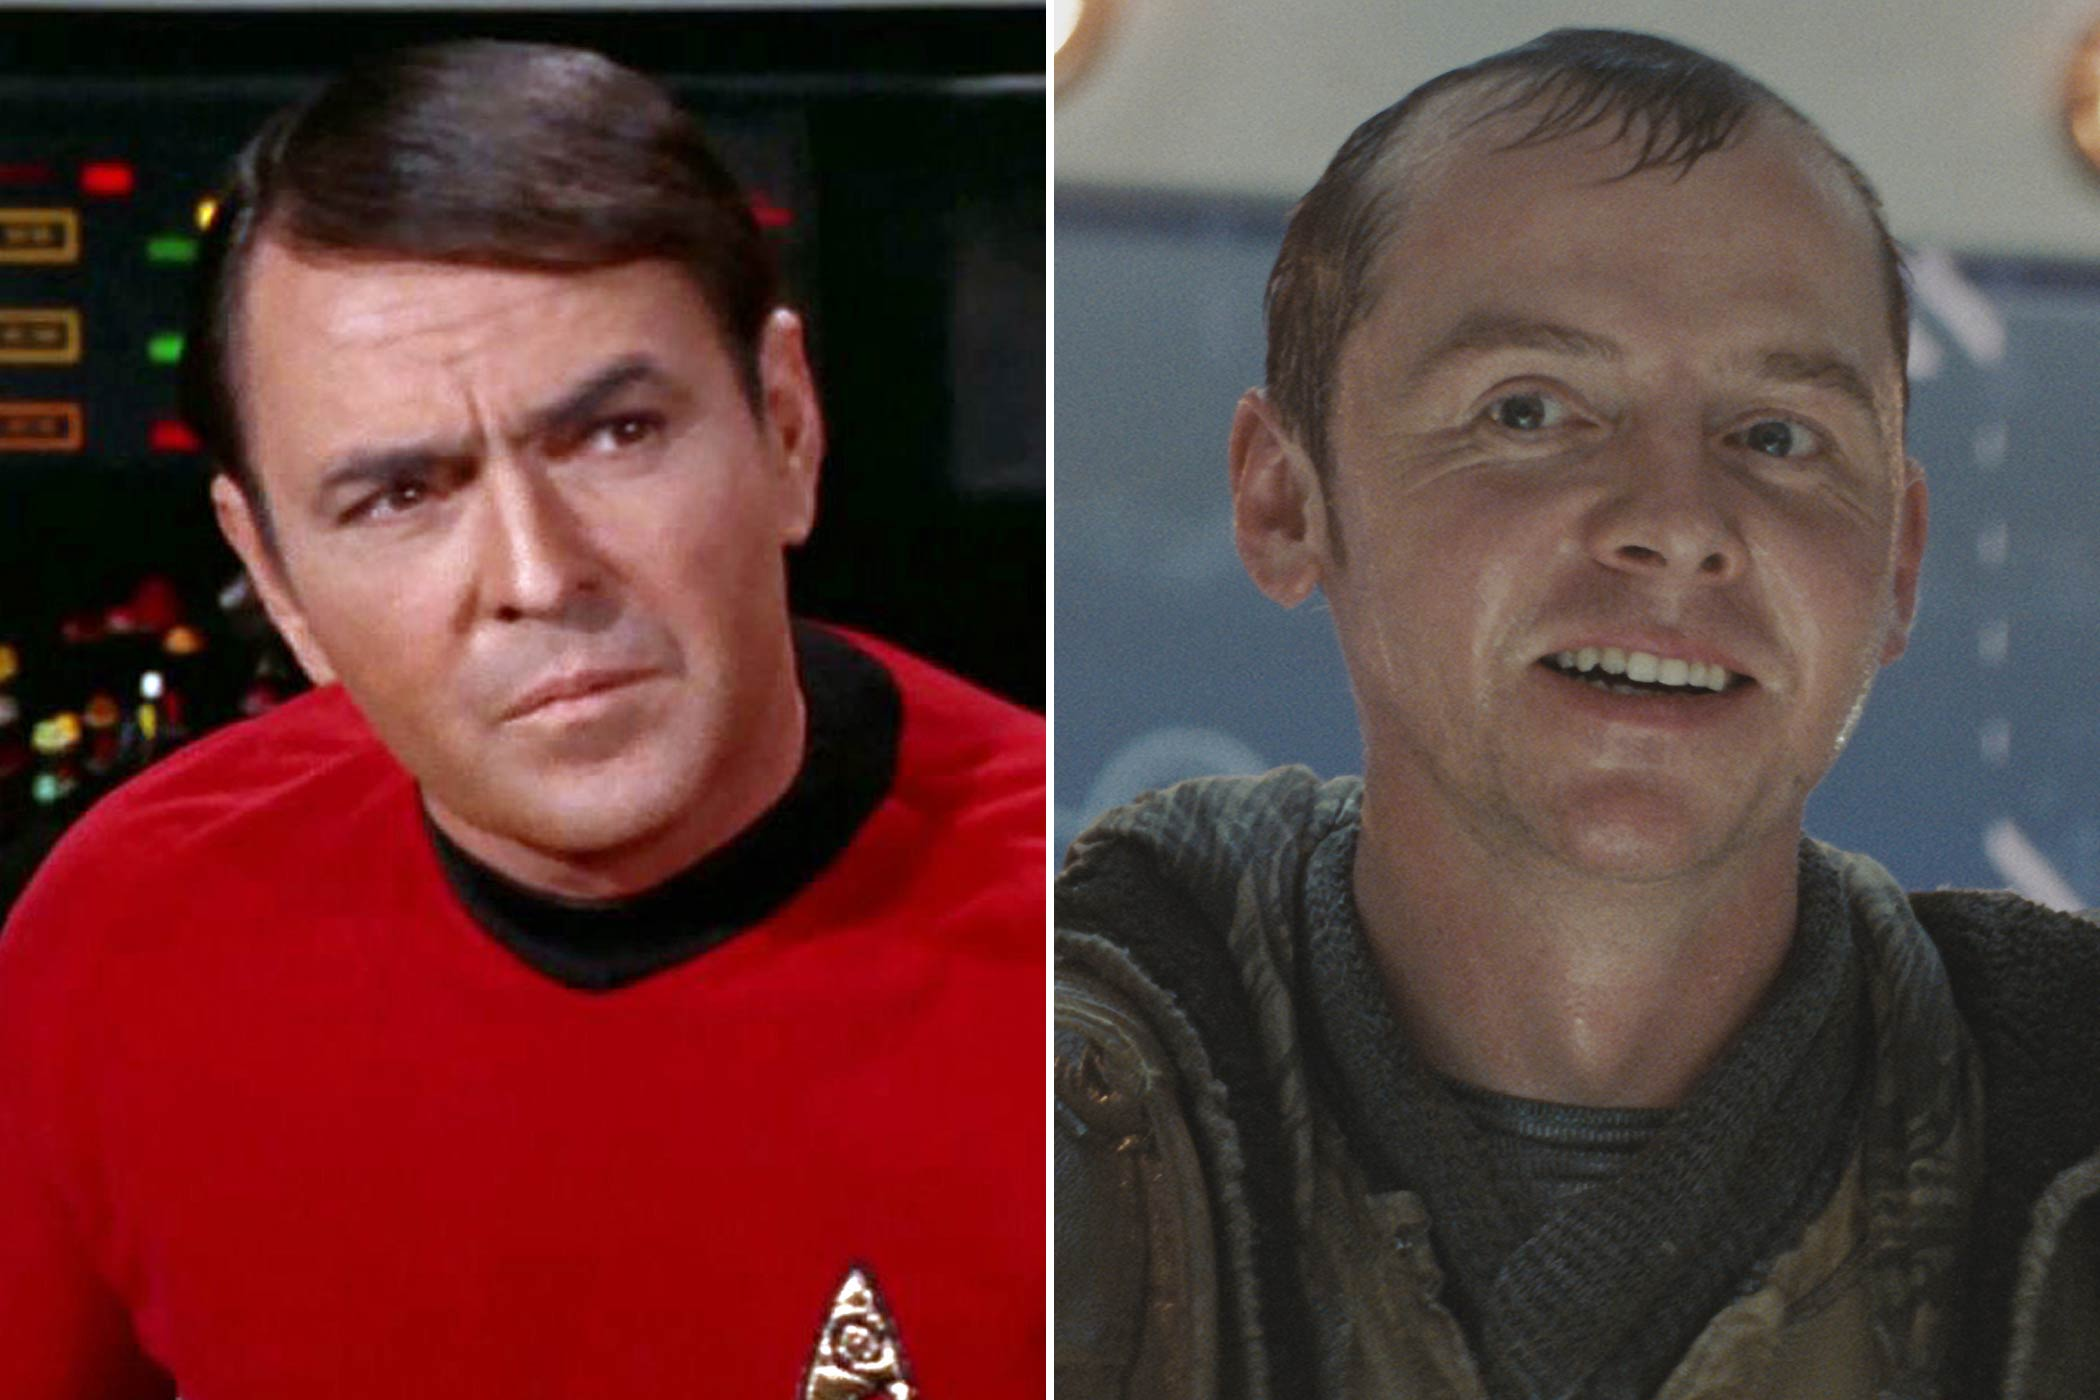 From left: James Doohan and Simon Pegg as Scotty